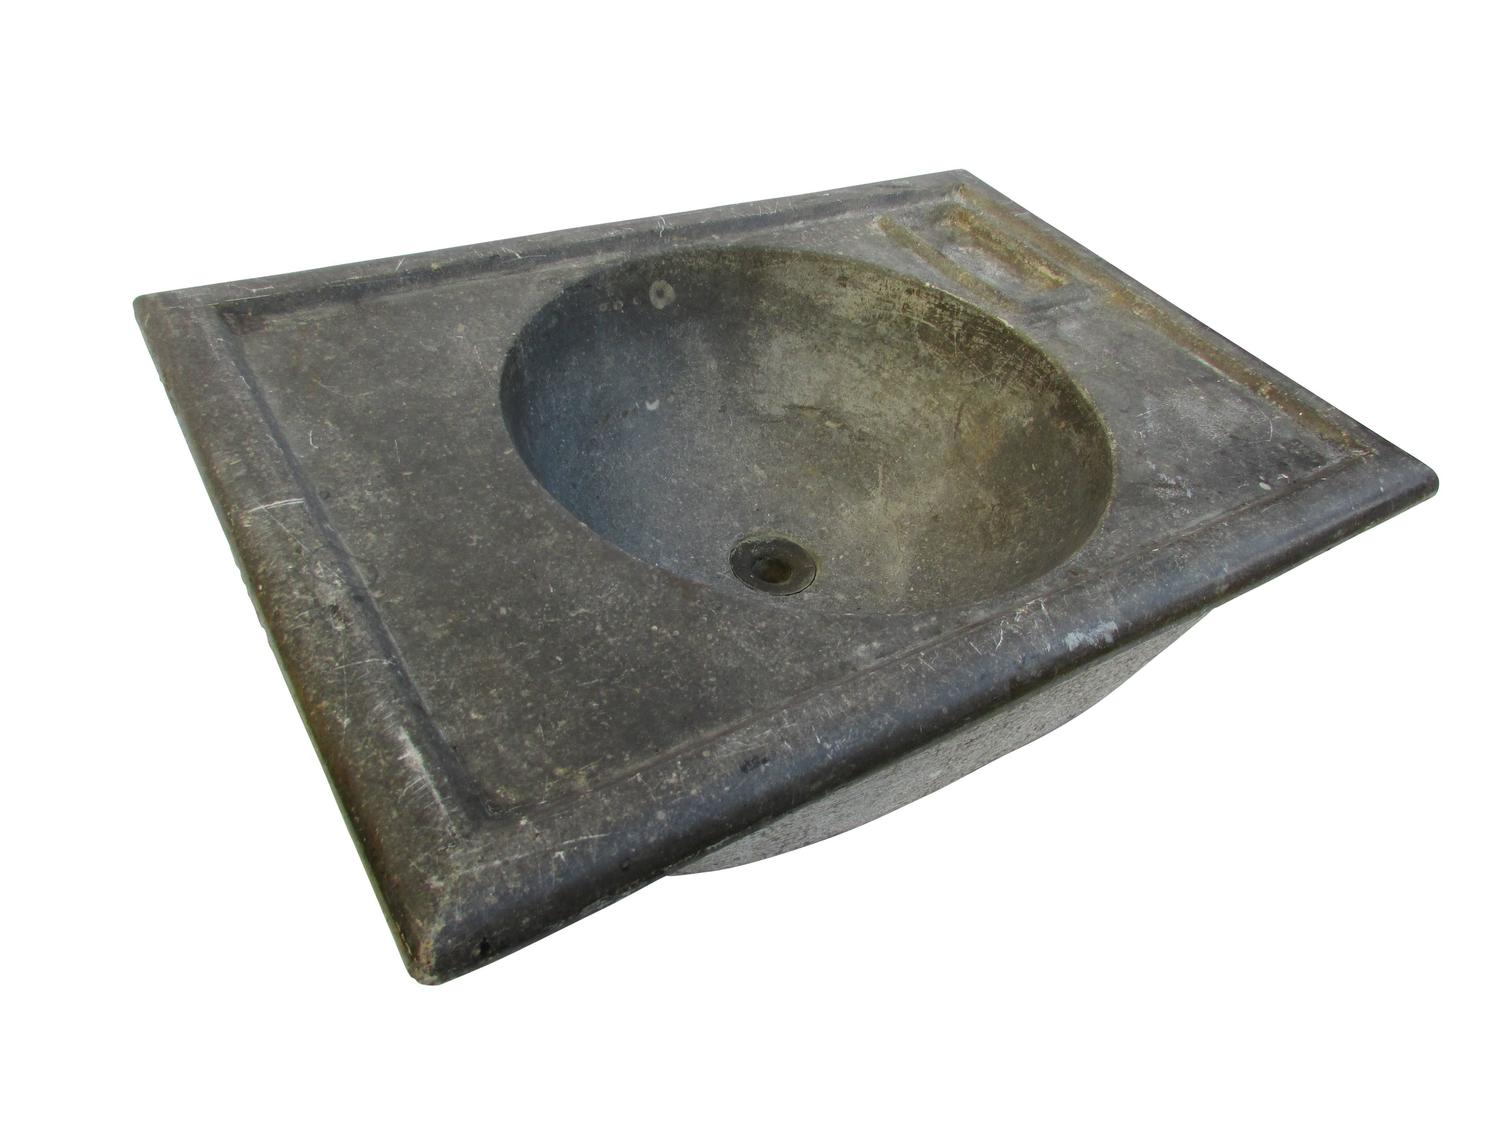 Soapstone Sink : Turn of the Century Soapstone Sink at 1stdibs